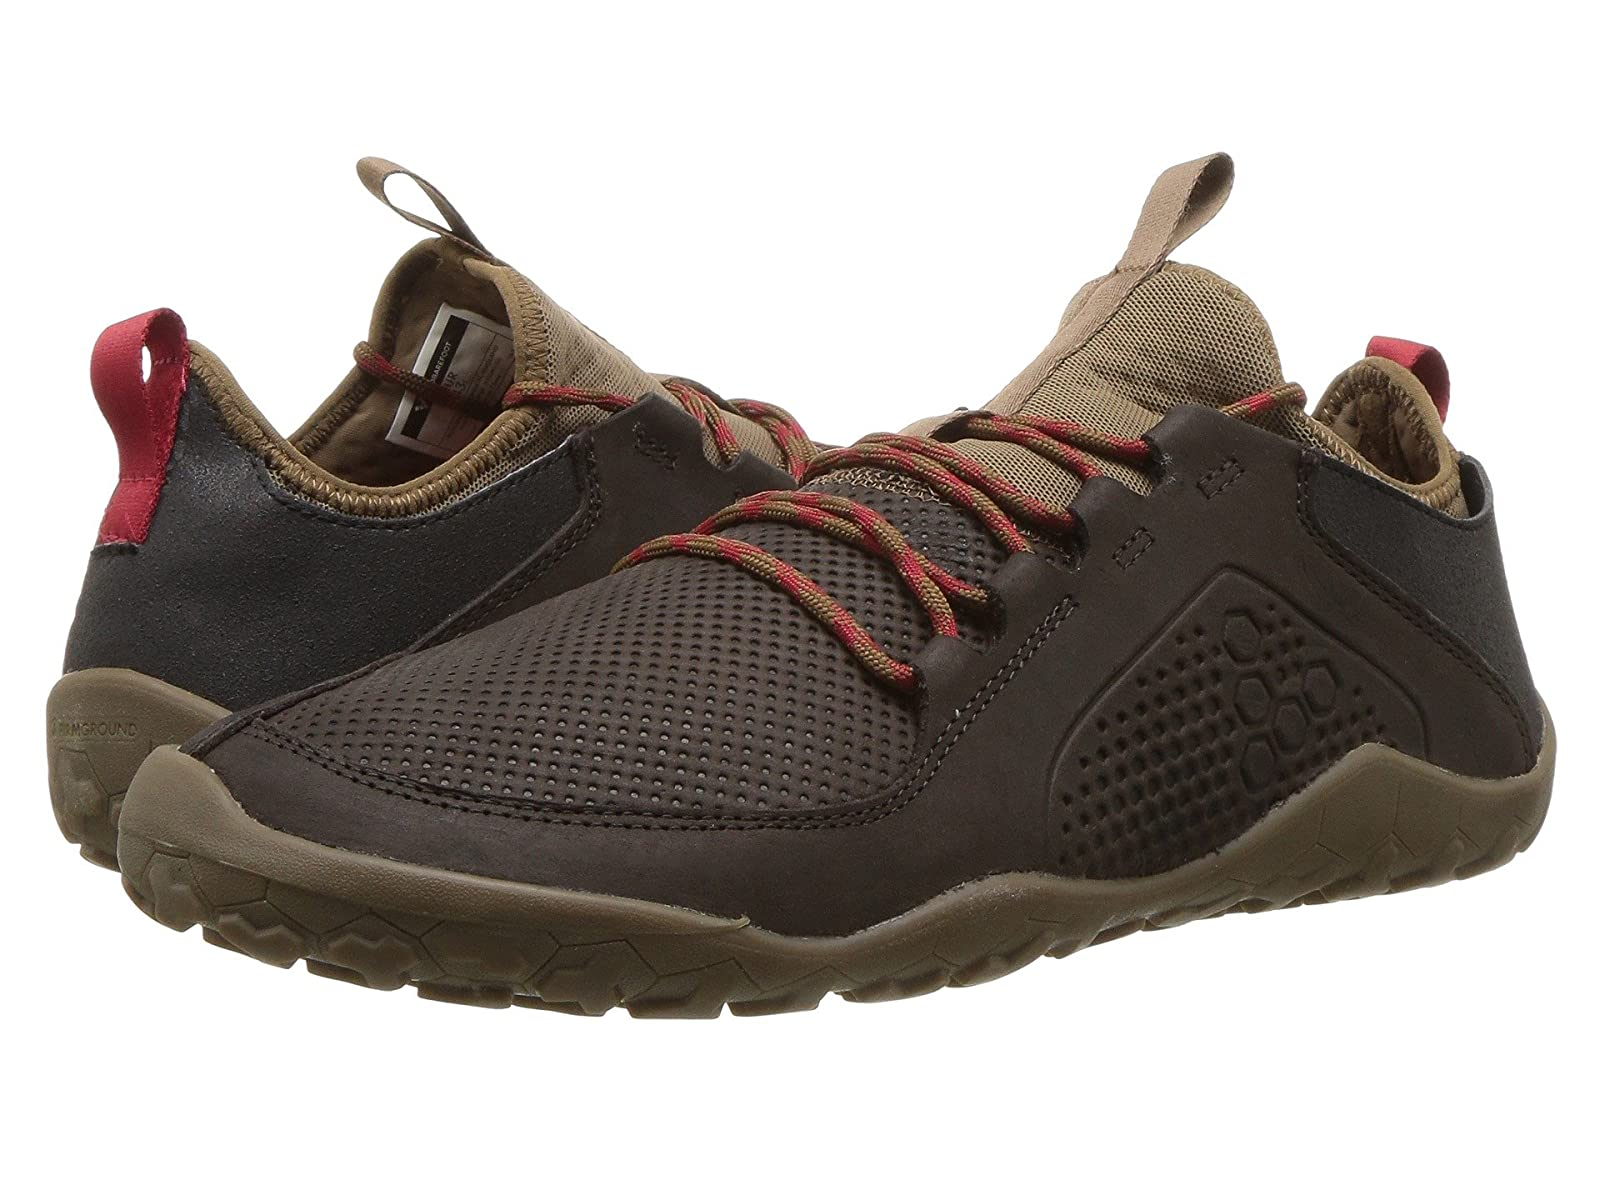 Vivobarefoot Primus Trek LeatherAtmospheric grades have affordable shoes